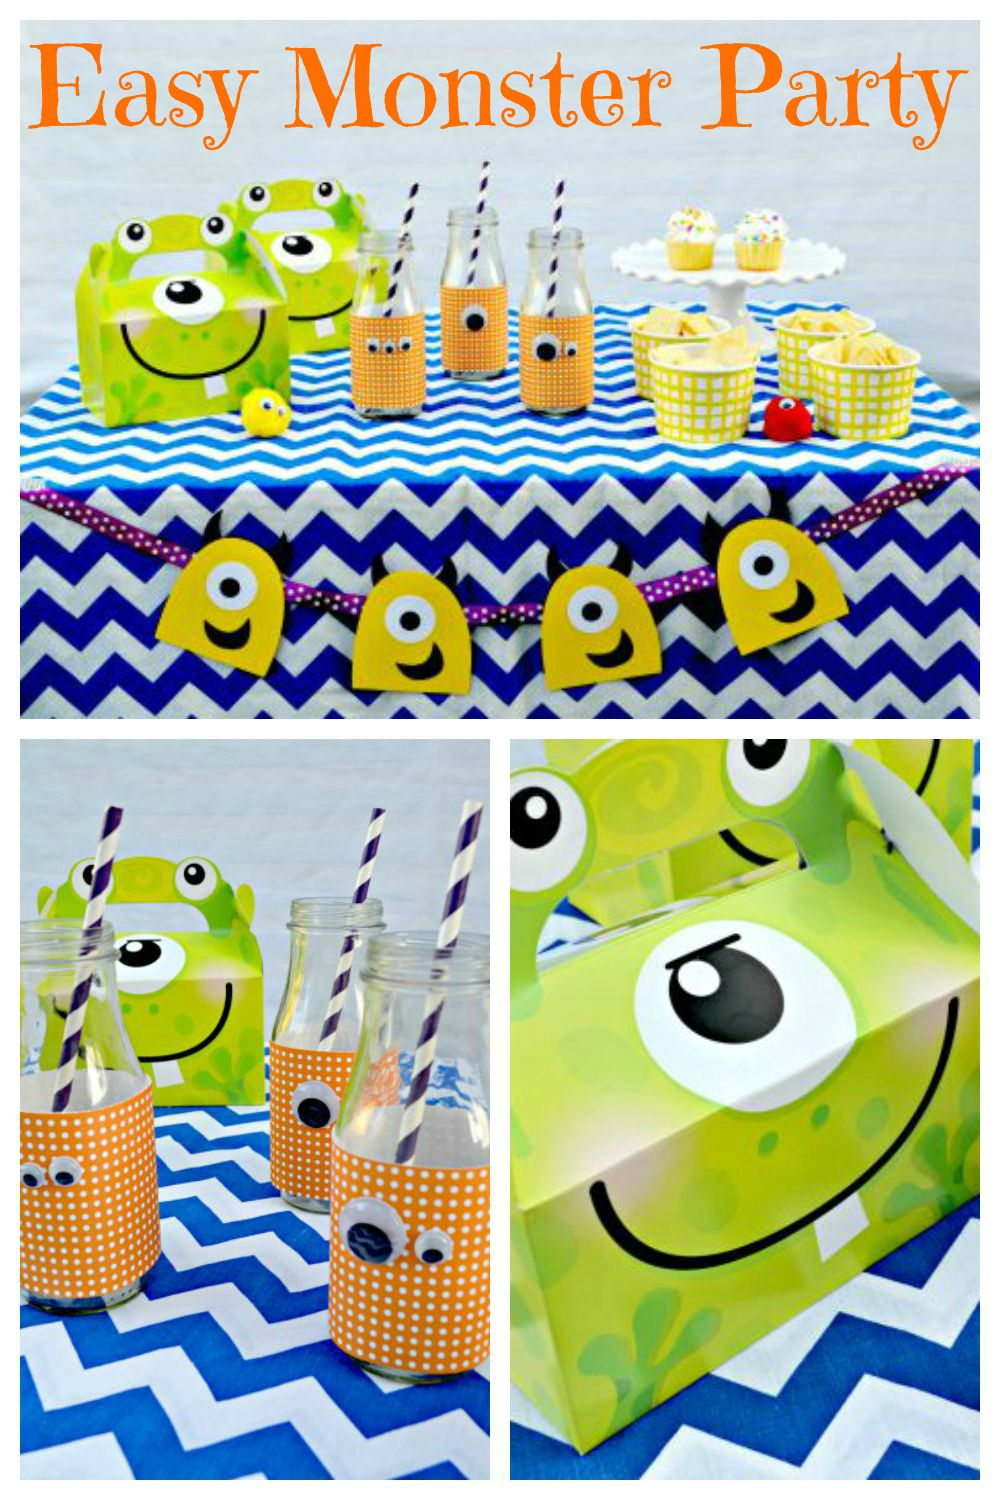 Easy Monster Party